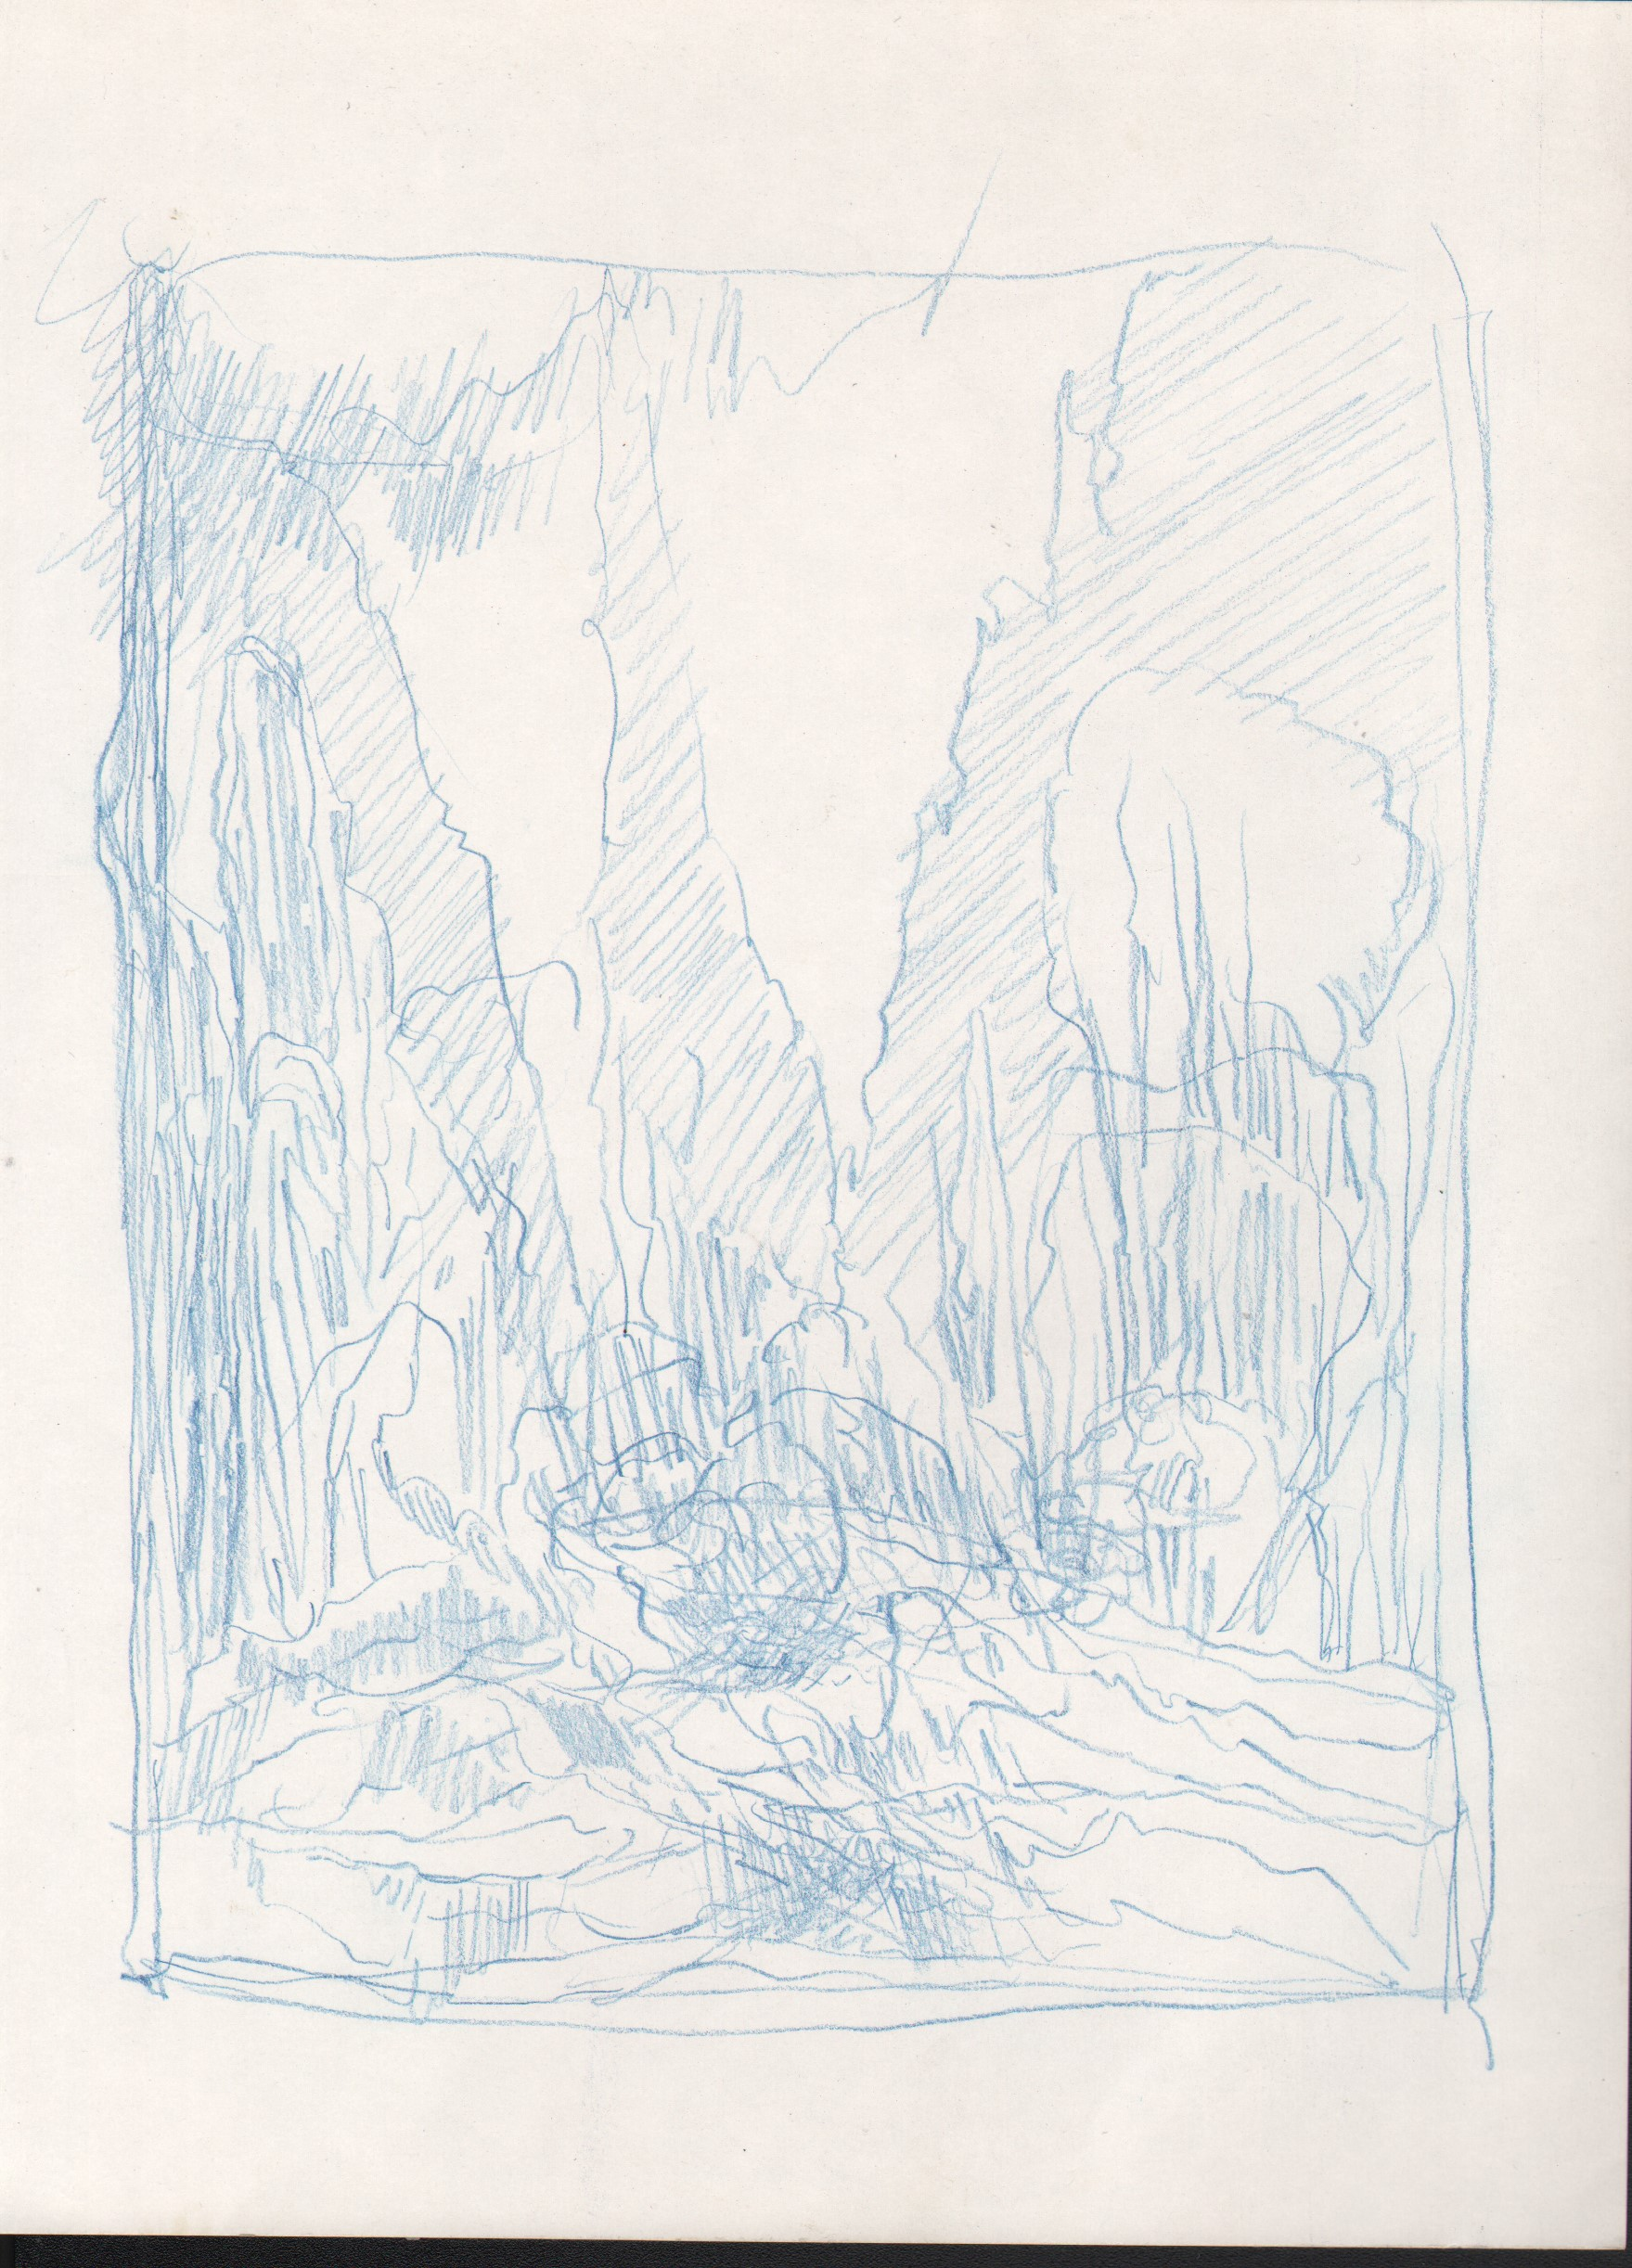 Campfire by Green Giants, 2015, 8 x 6 inches, pencil on paper